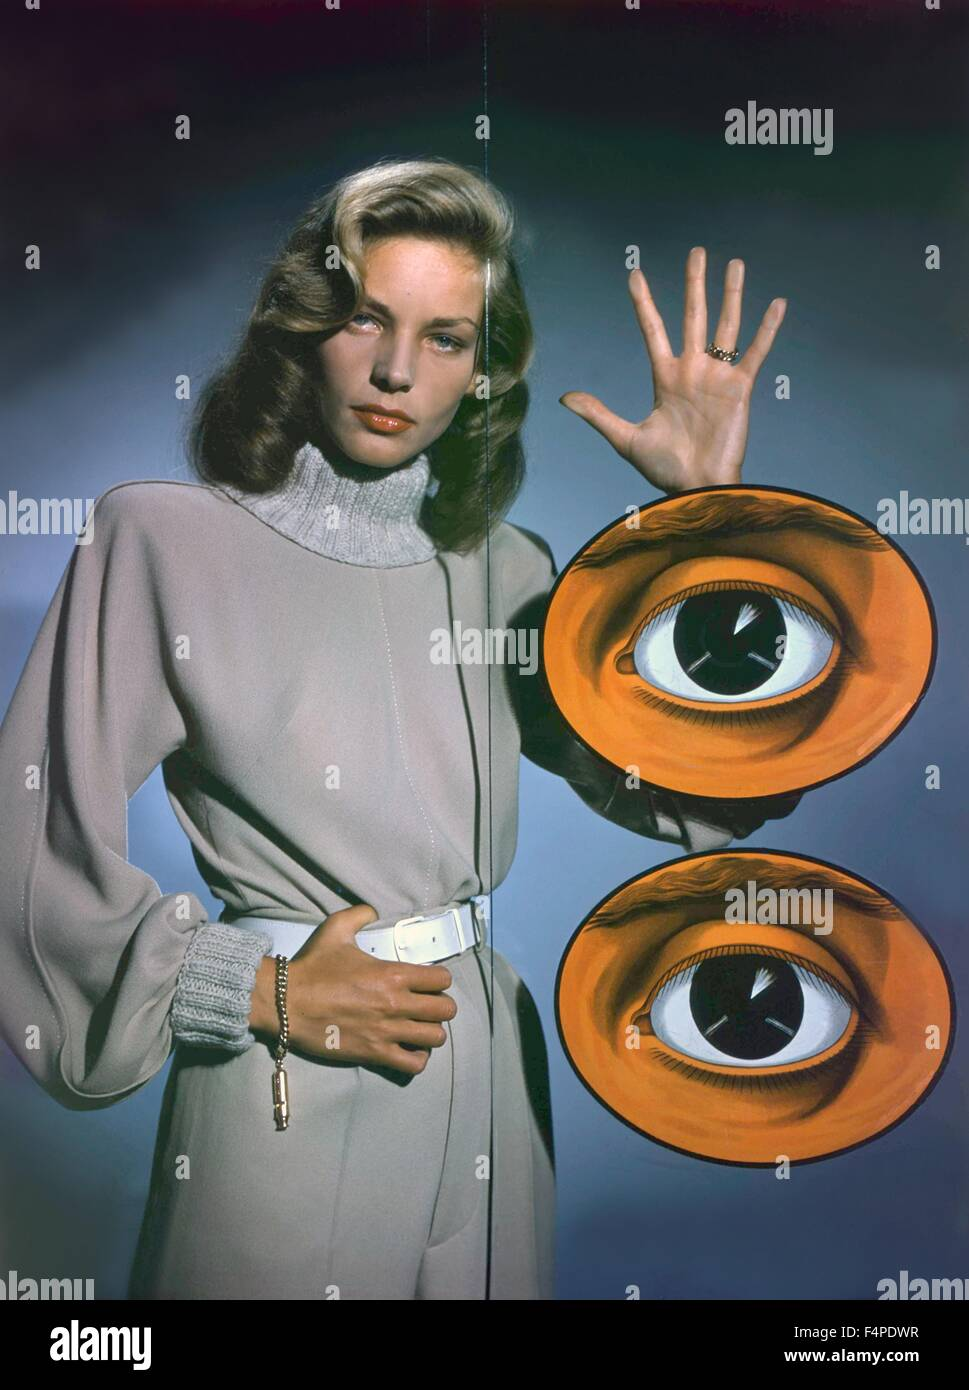 Portrait of Lauren Bacall with two illustrated eyes - Stock Image